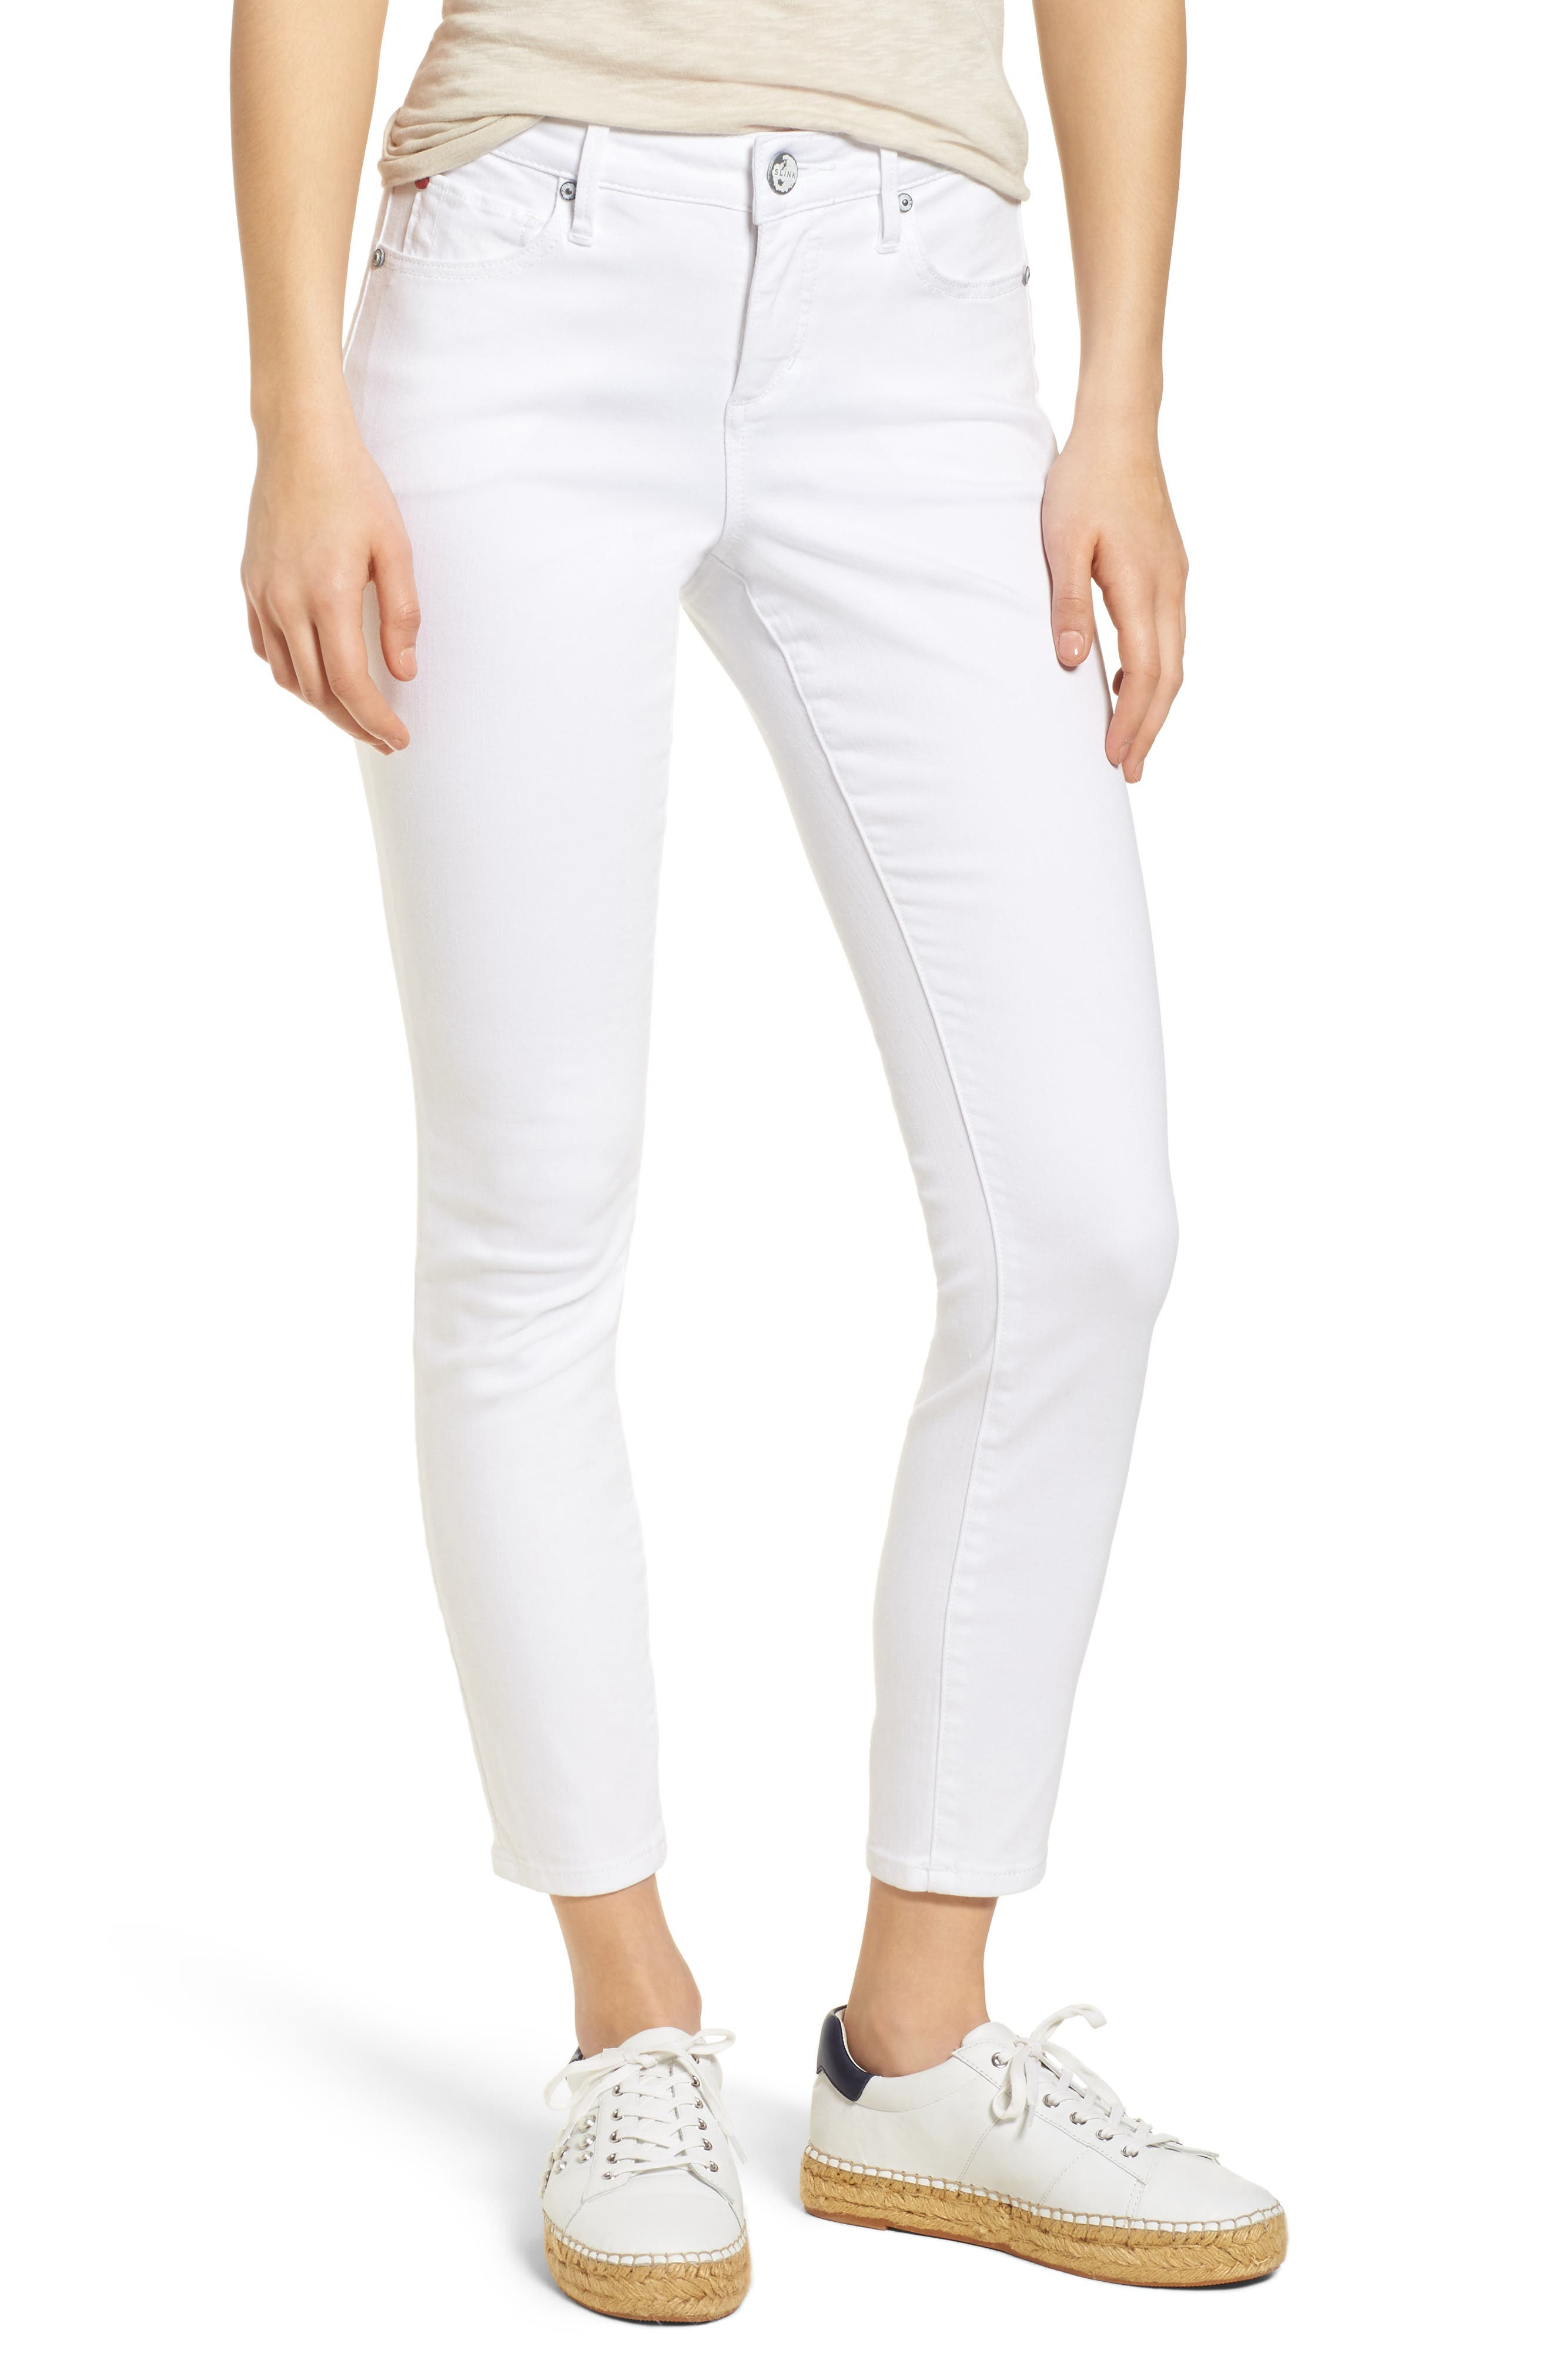 SLINK Ankle Skinny Jeans,                             Main thumbnail 1, color,                             114